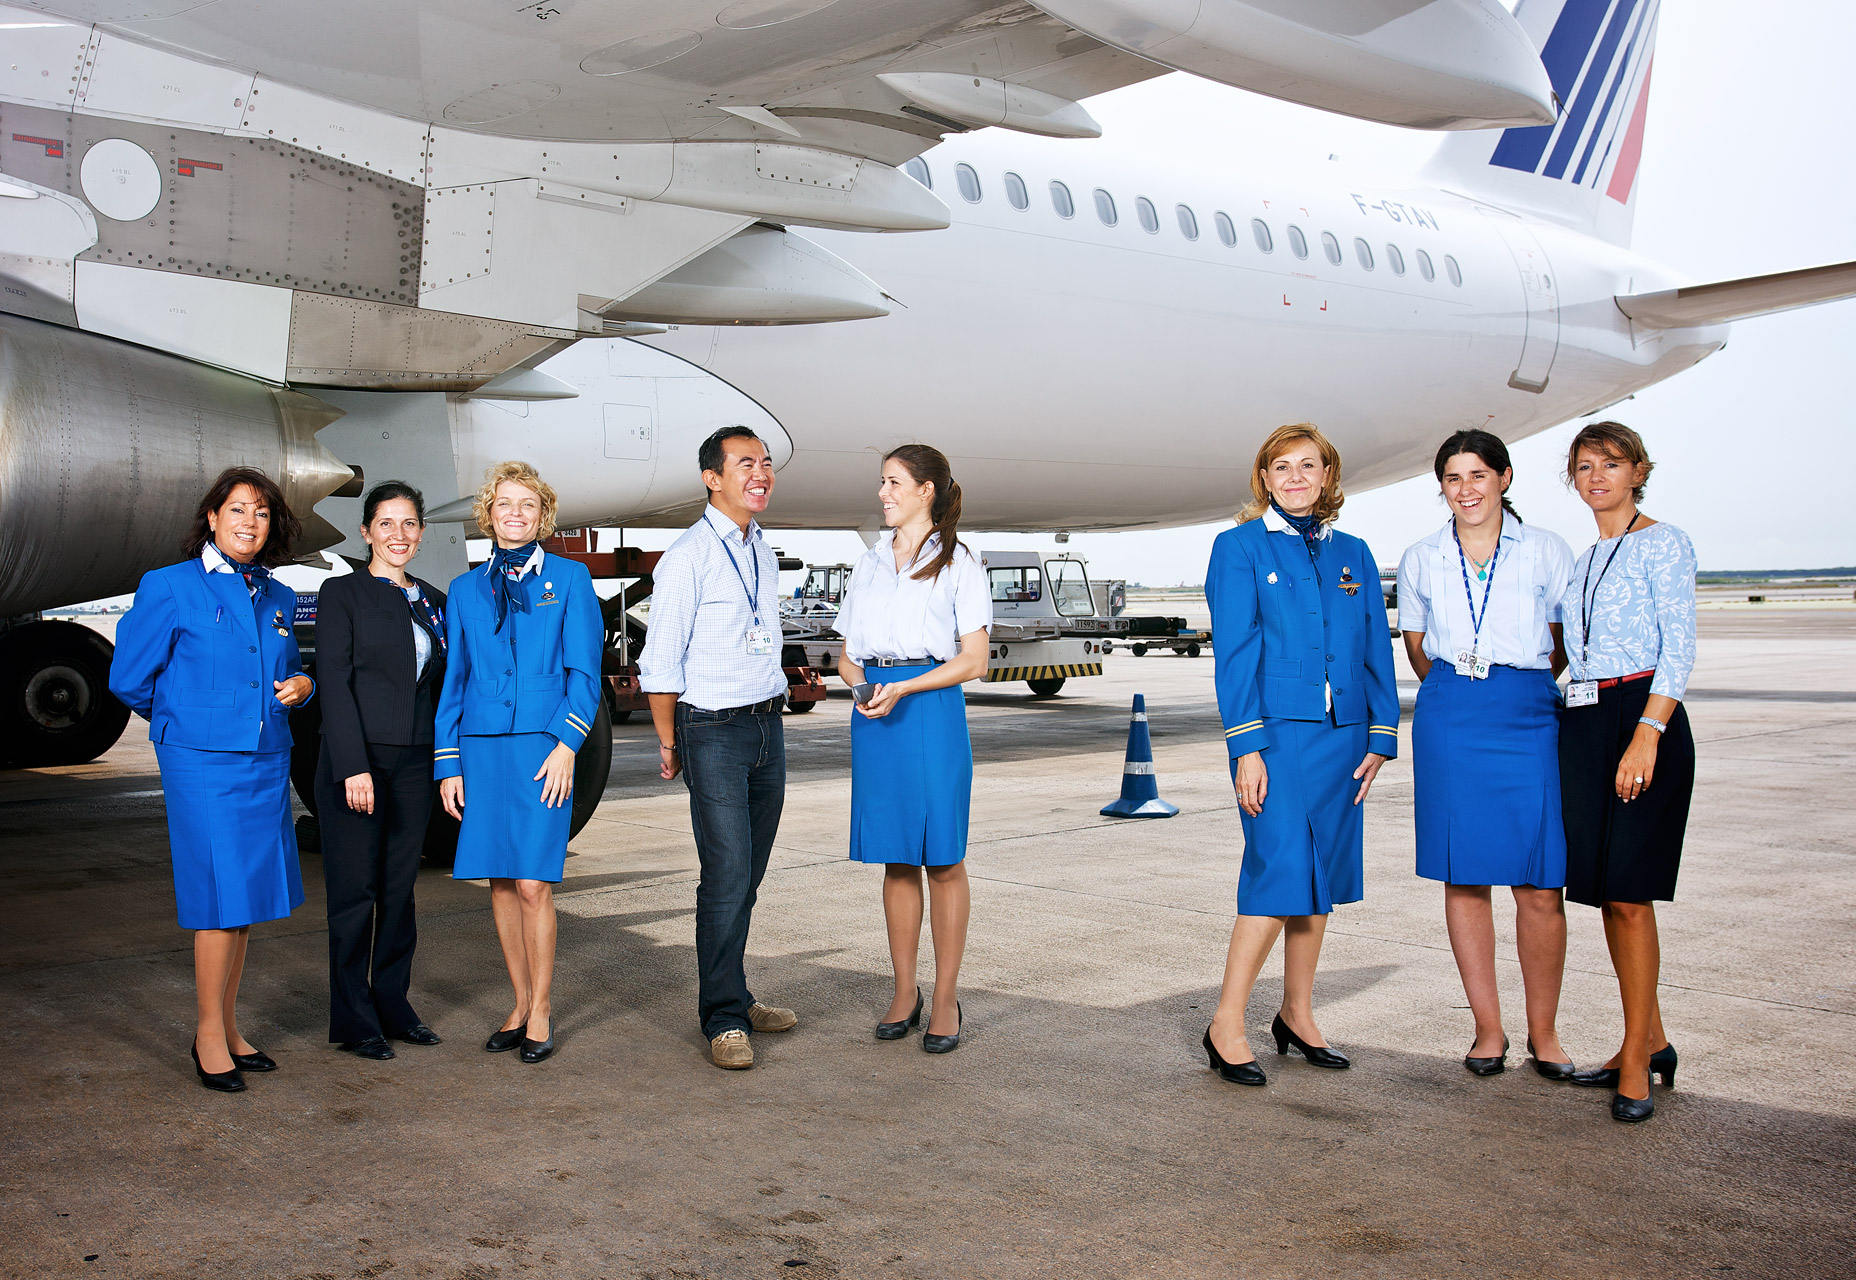 KLM Air France, Le Team, Barcelona, for Wolkenridder